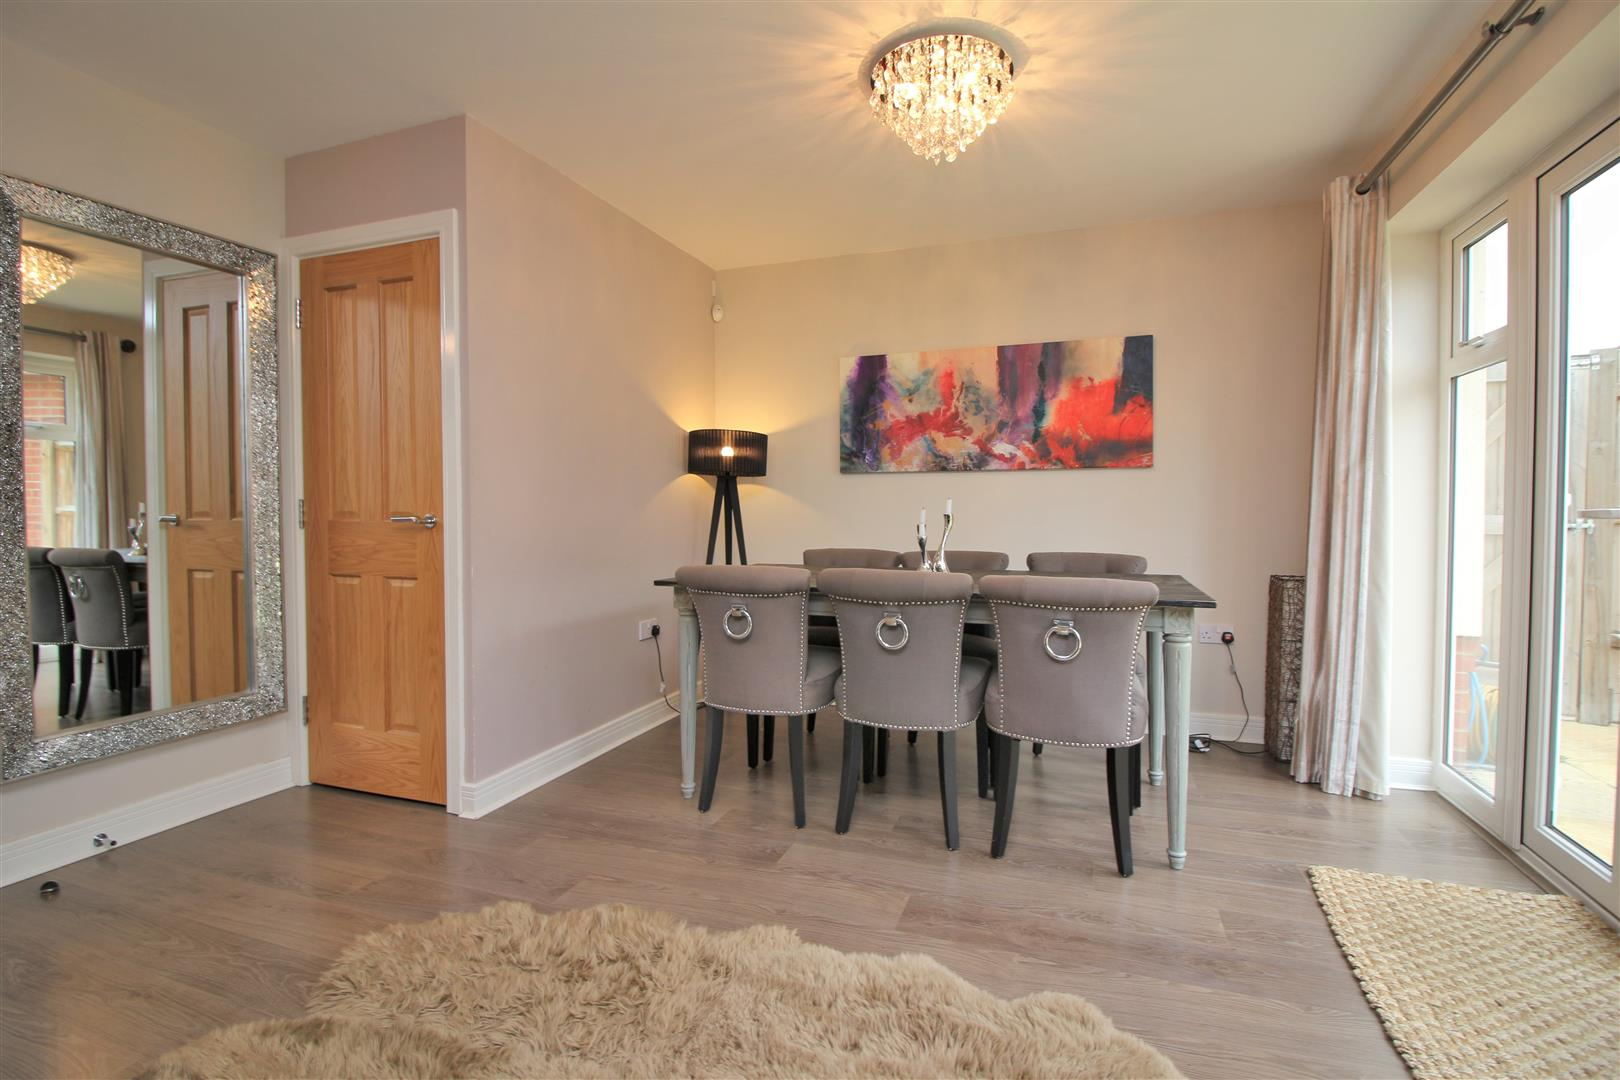 4 bed to rent in Leavesden - (Property Image 3)